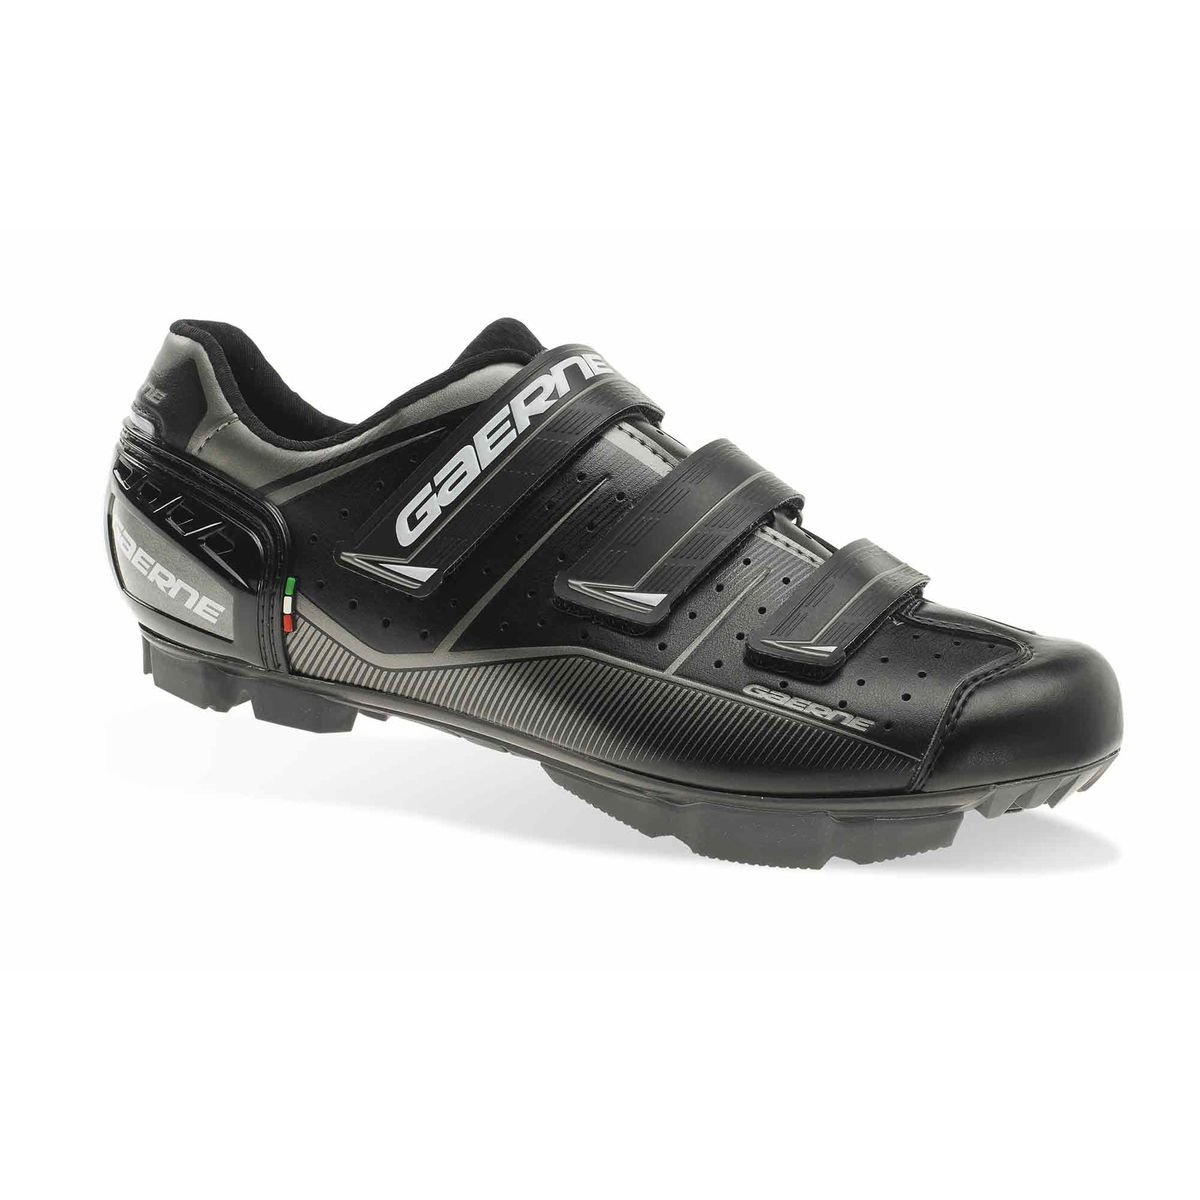 GAERNE G.LASER WIDE MTB shoes | Shoes and overlays